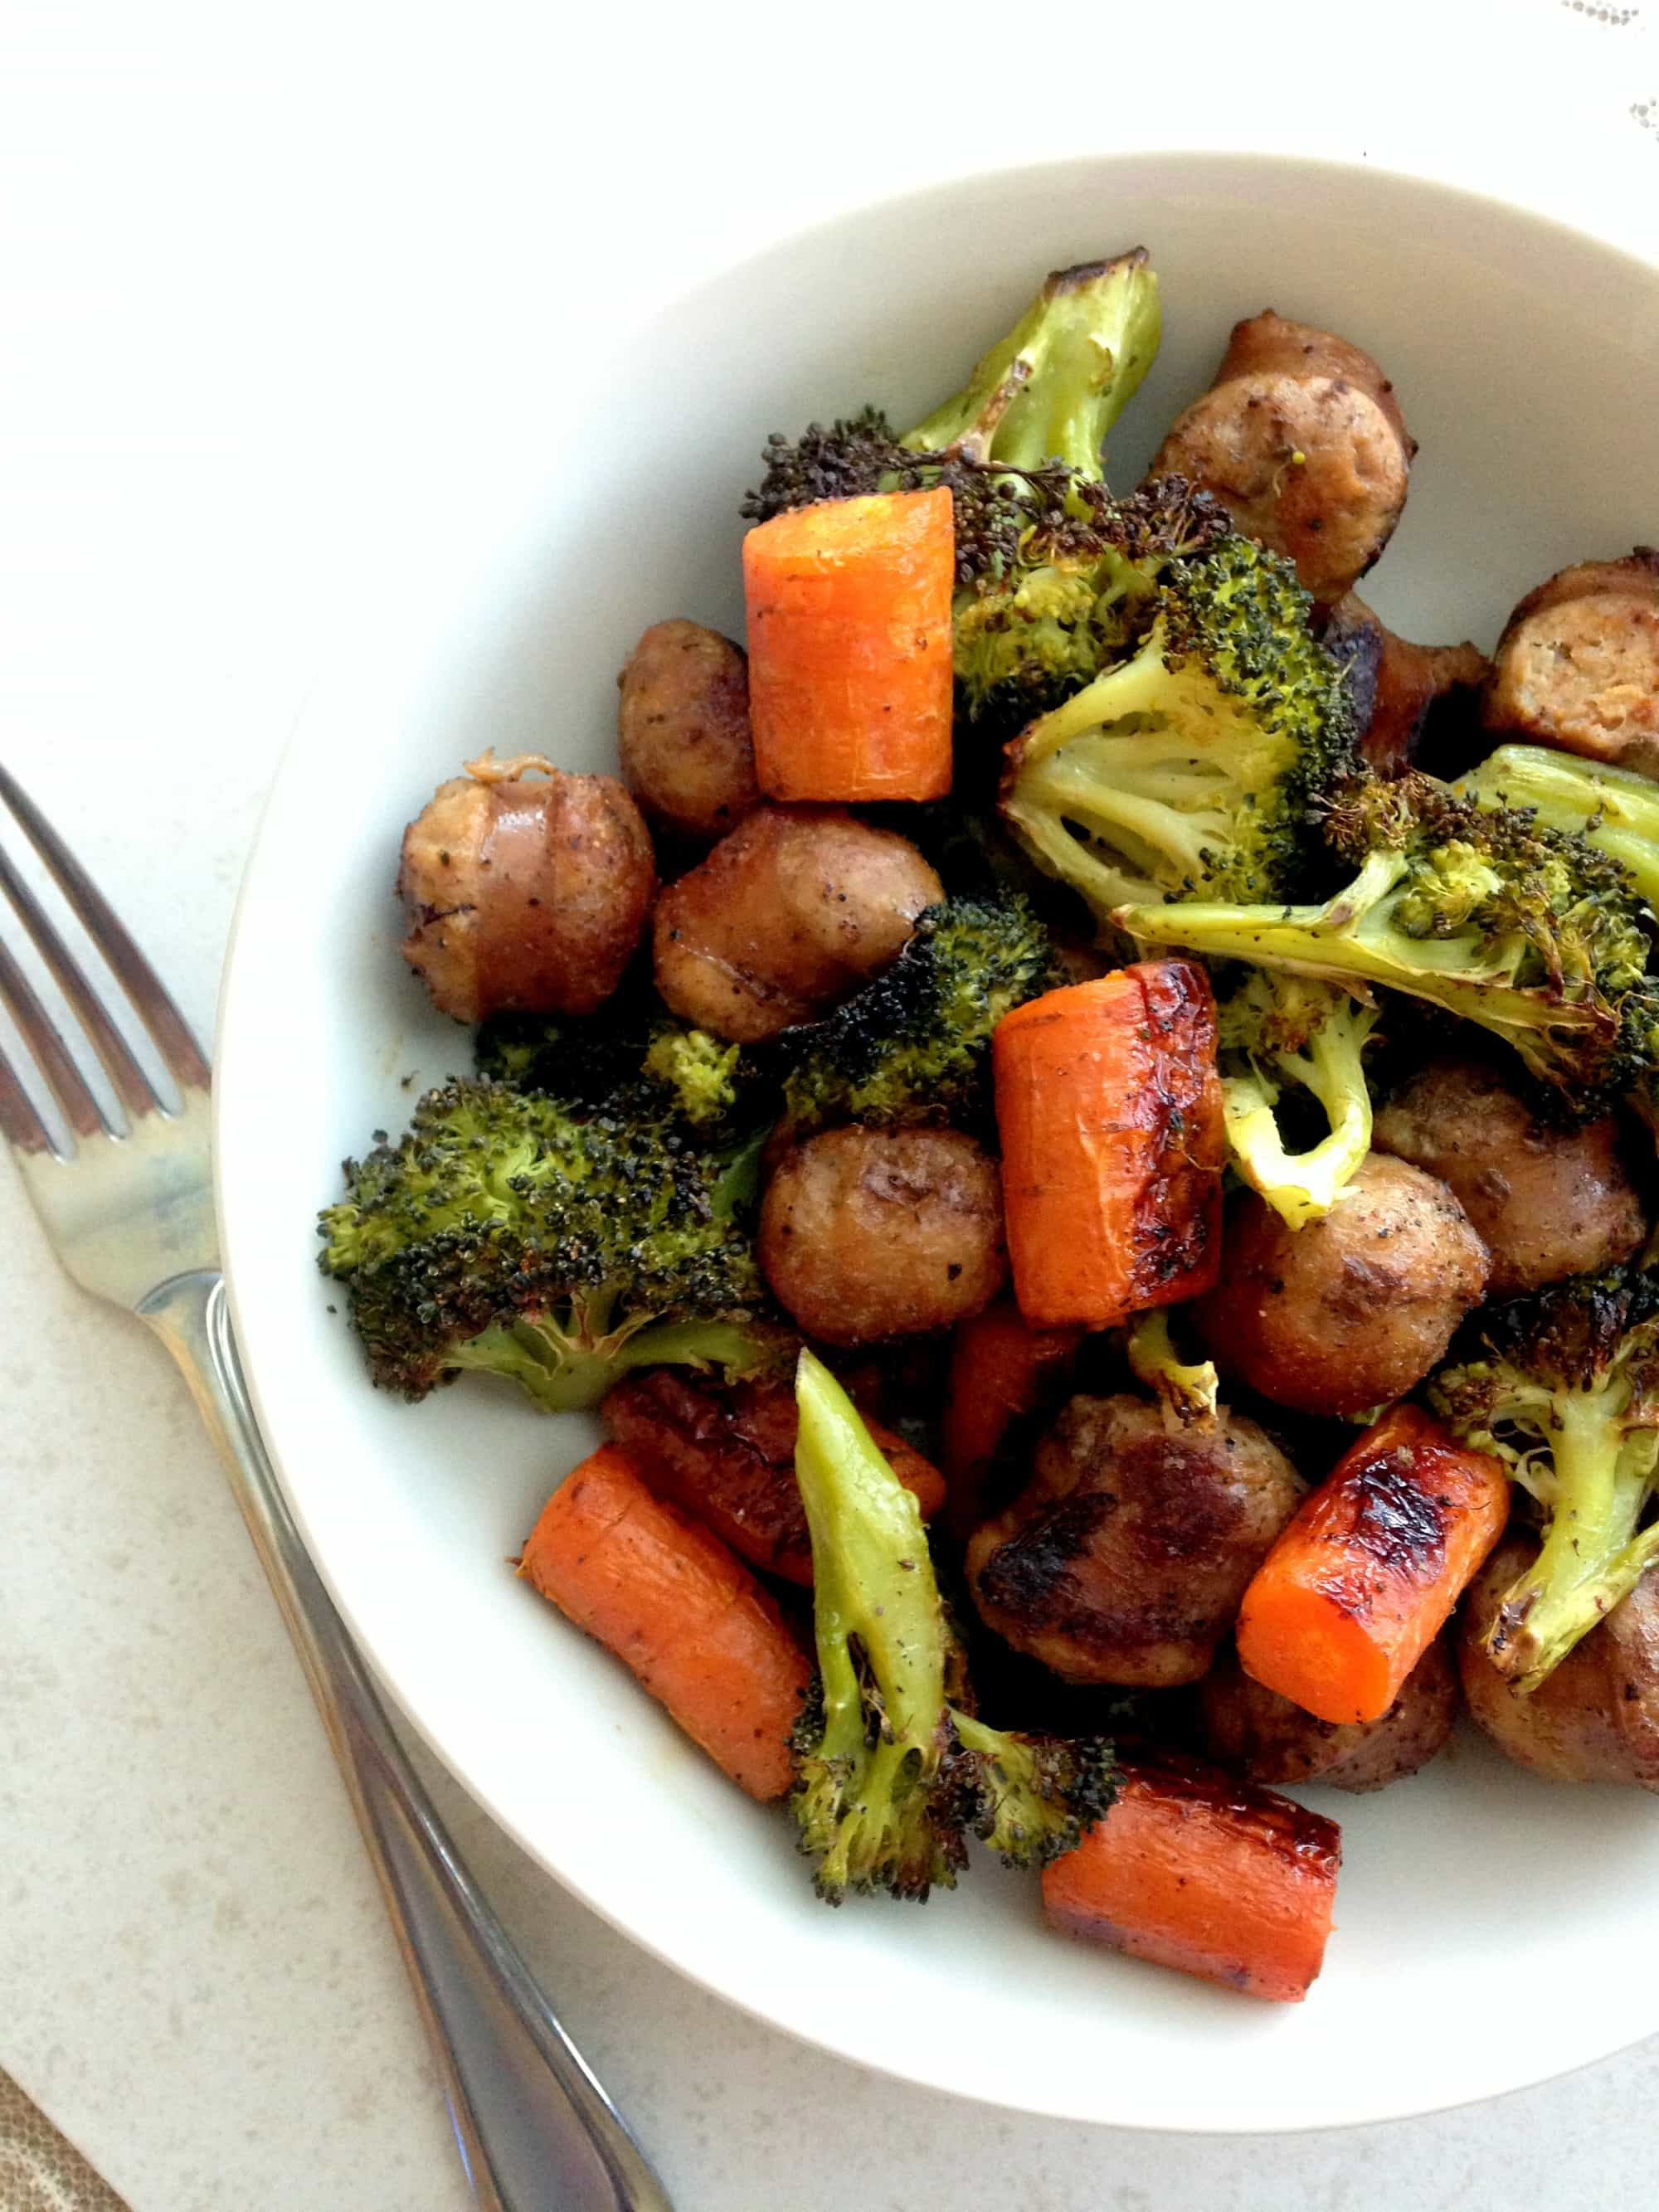 ... my roasted broccoli carrots and carrots and broccoli roasted